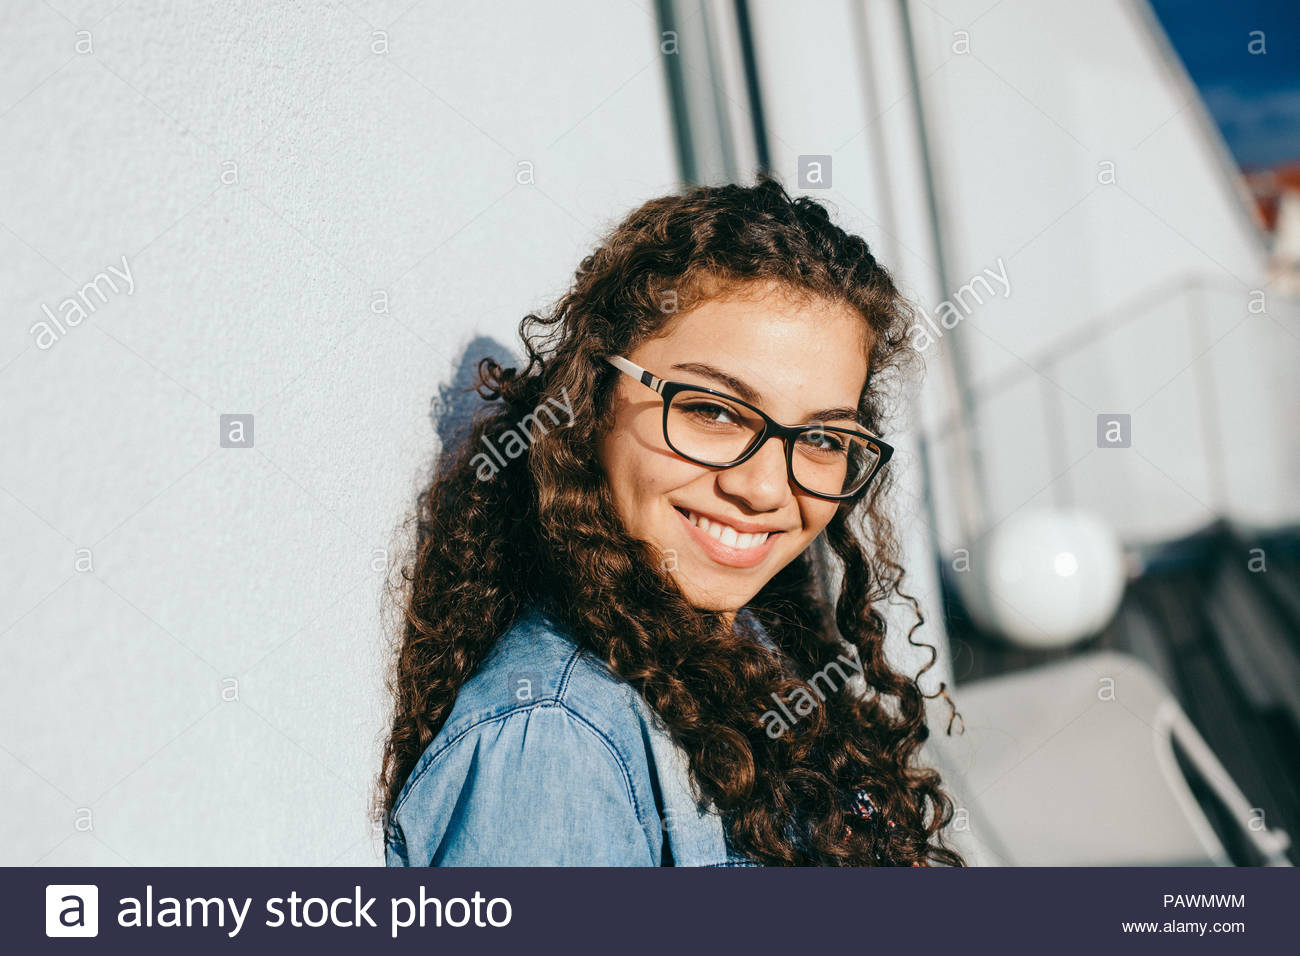 Smiling woman with curly hair and glasses - Stock Image